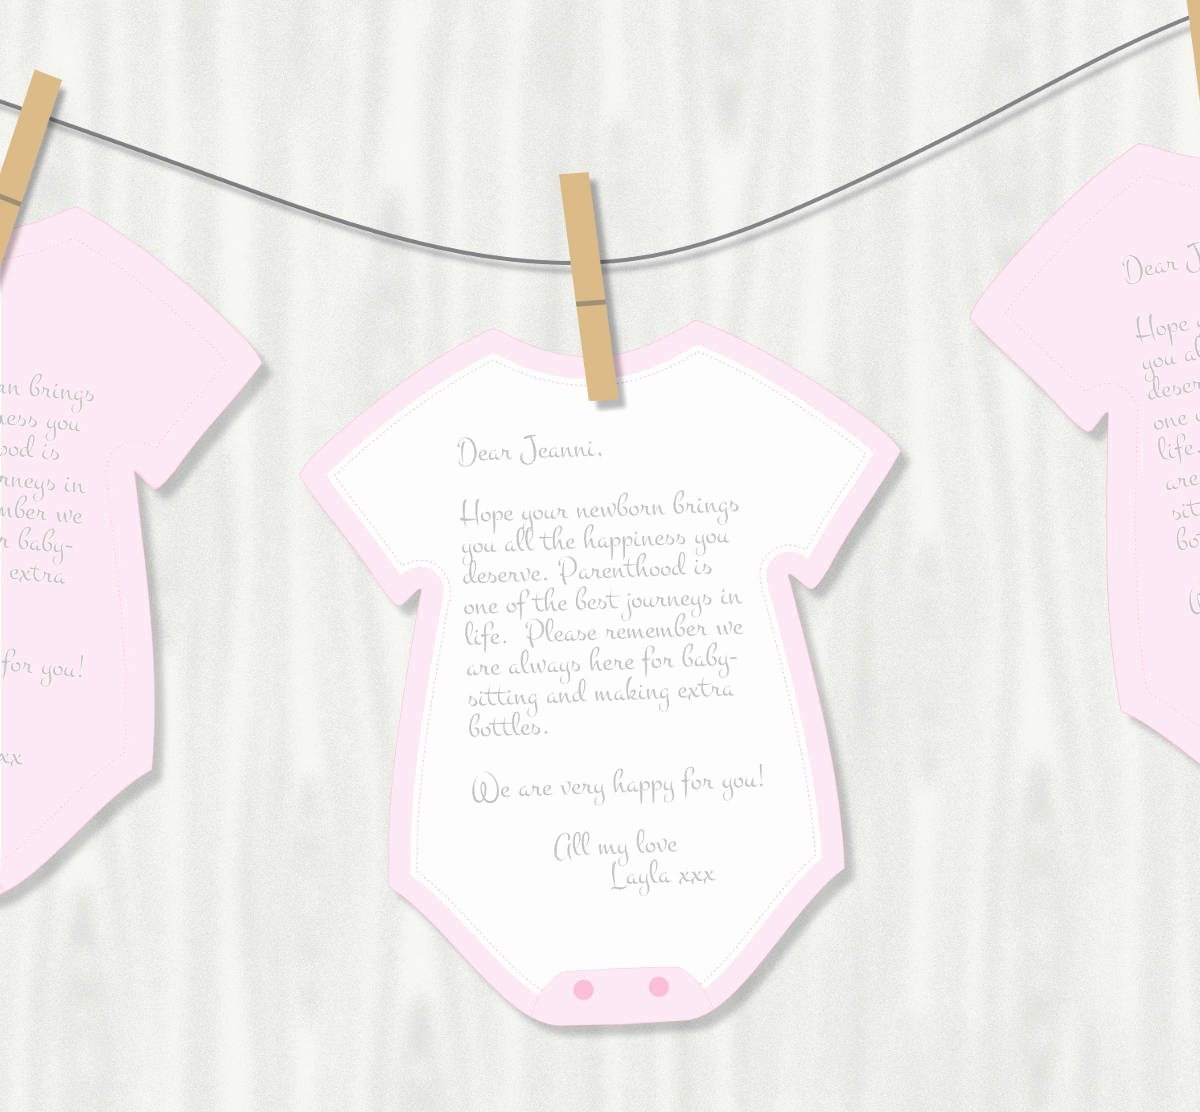 Onesie Paper Cut Out Beautiful Best S Of Baby Shower Templates Cutouts Baby Shower